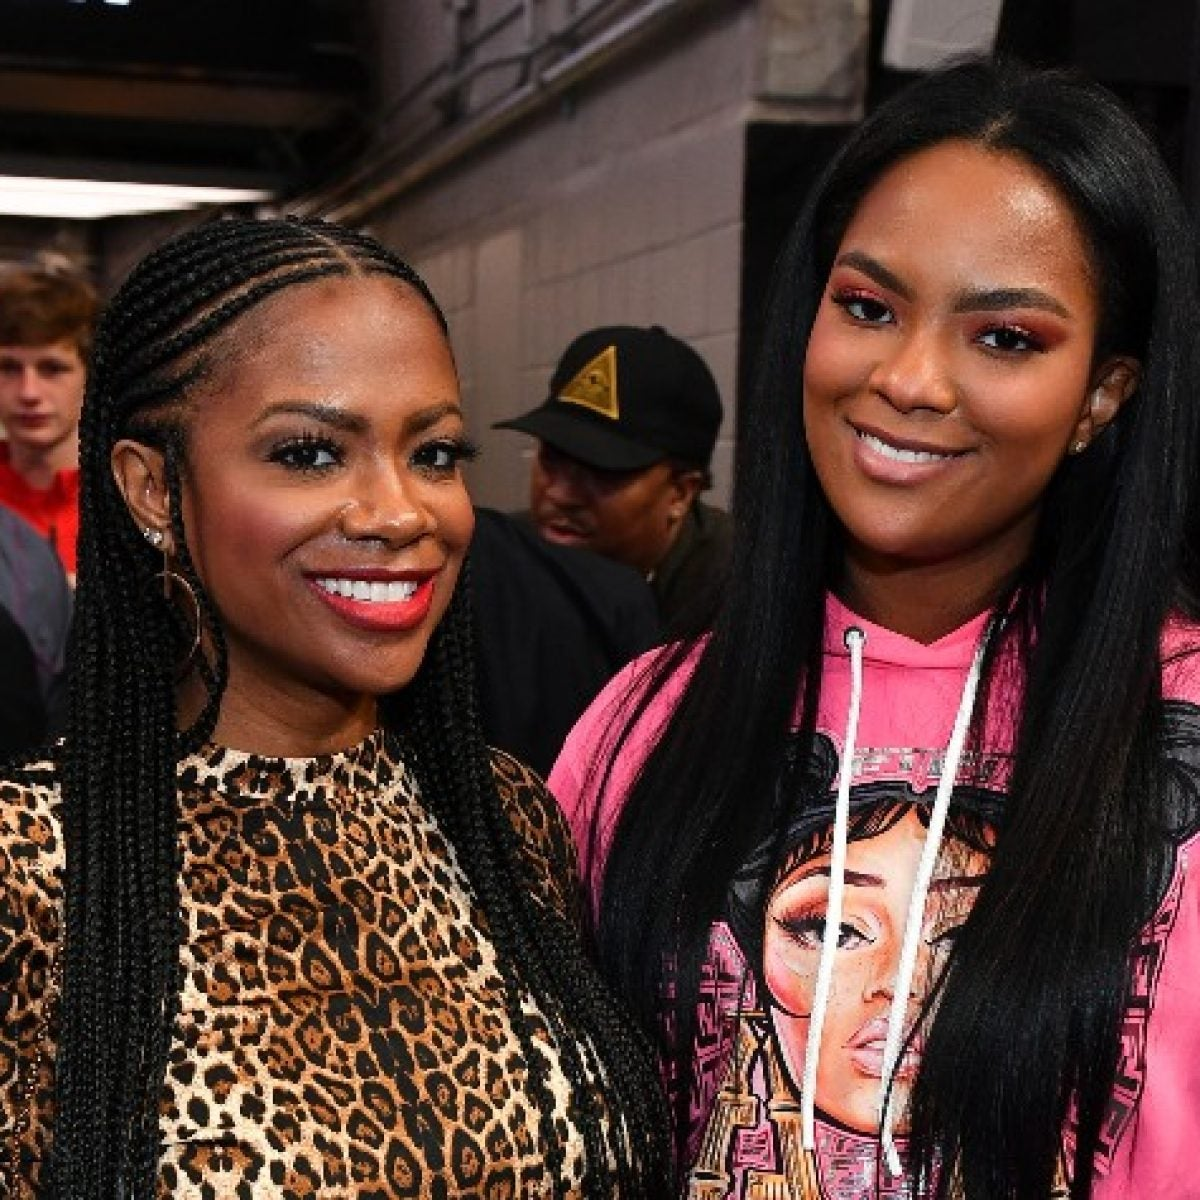 'Real Housewives Of Atlanta' Star Kandi Burruss Is Here For Her Daughter's New Look